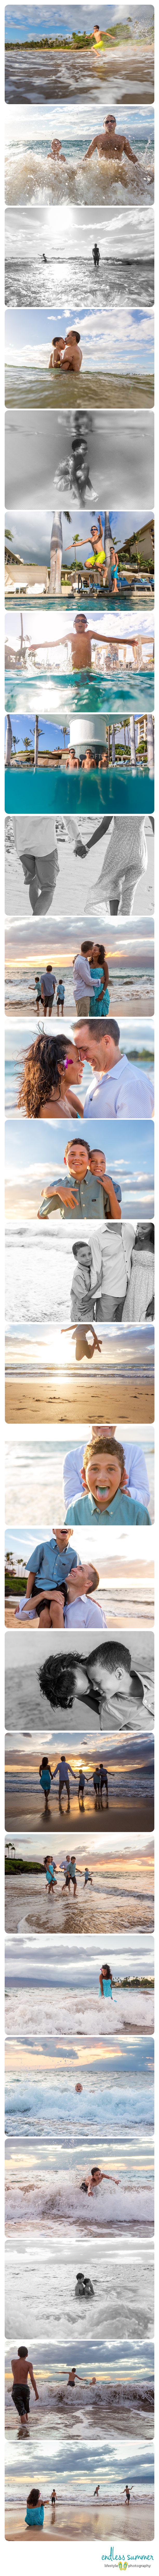 Maui_Lifestyle_Family_Photography